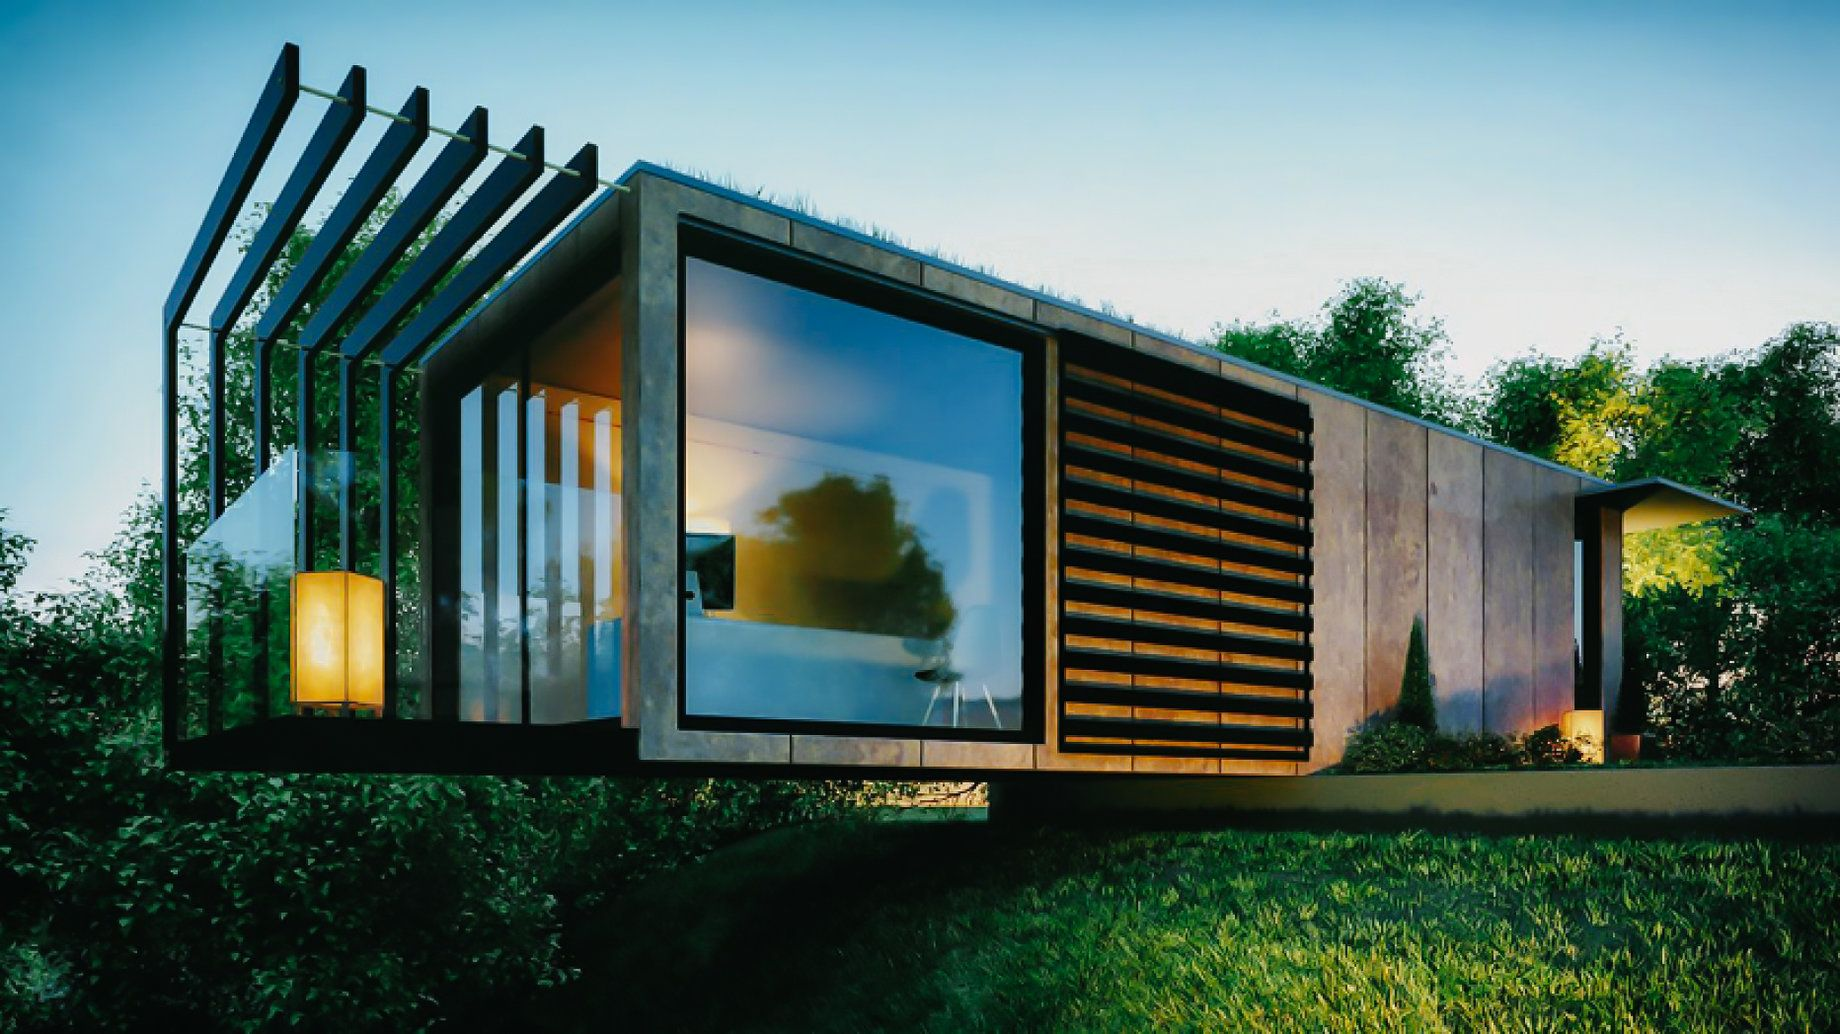 20 cool as hell shipping container homes | ships, house and